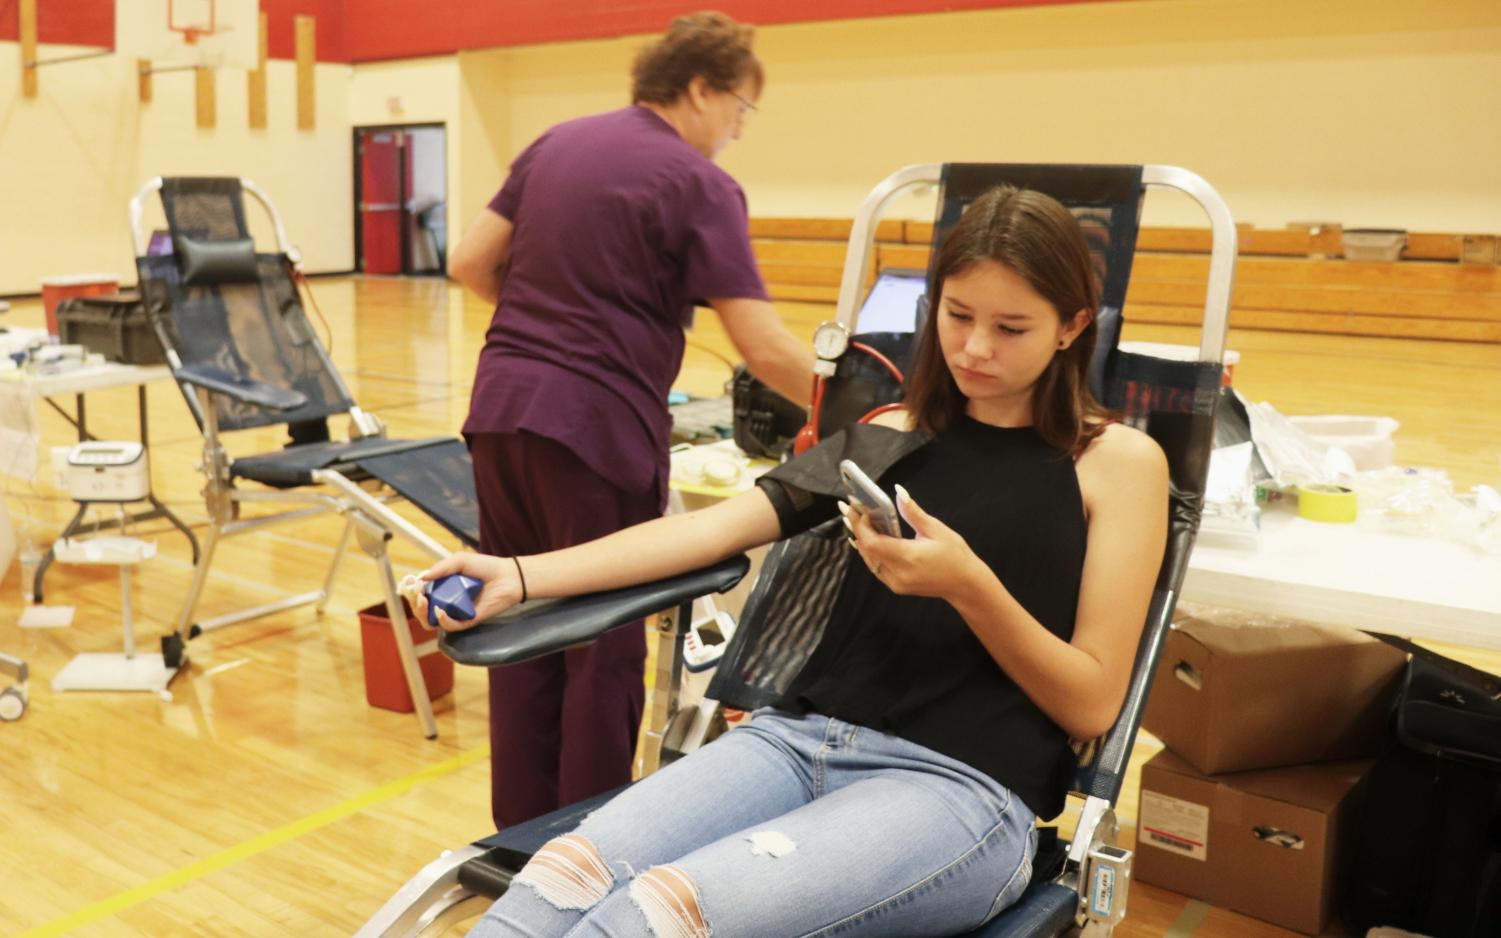 Senior+Lexi+Glowon+donated+blood+on+Tuesday%2C+August+27th+during+the+annual+RHS+blood+drive.+This+blood+drive+was+held+by+the+Rangeview+student+leadership.